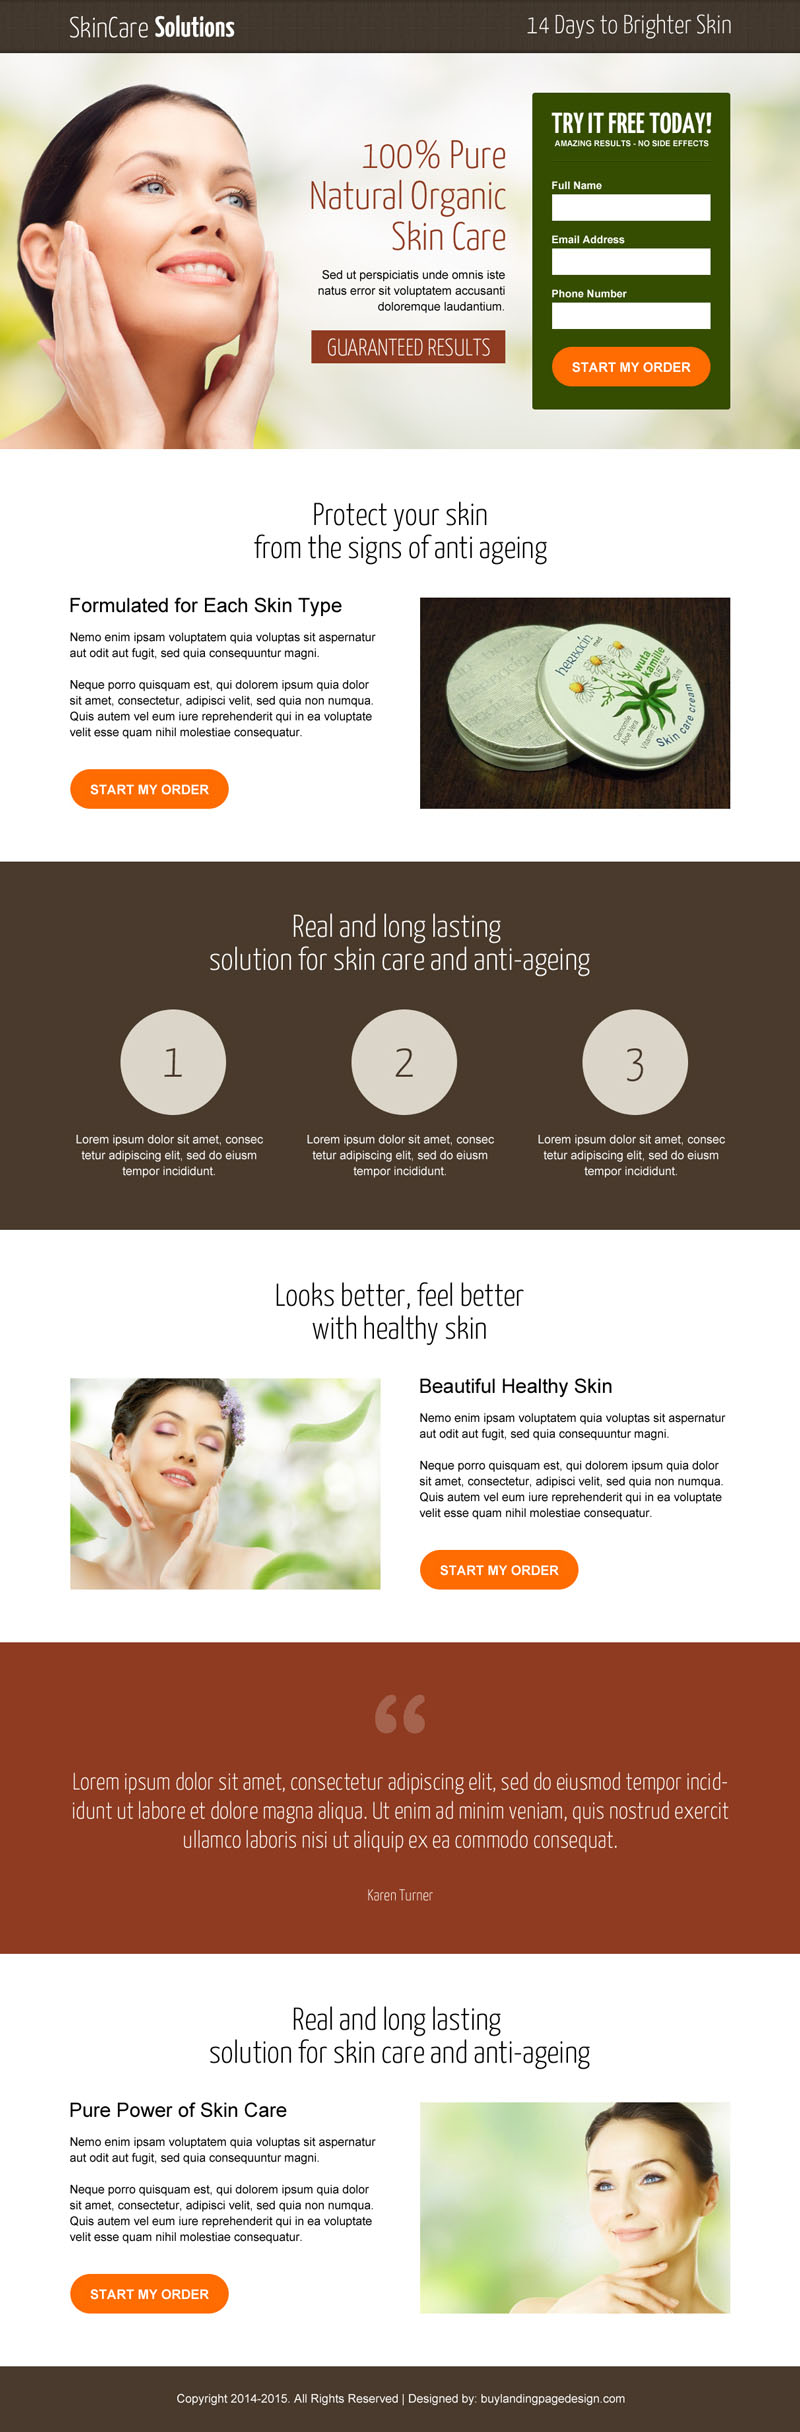 natural-organic-skin-care-product-selling-leads-capture-landing-page-design-template-018